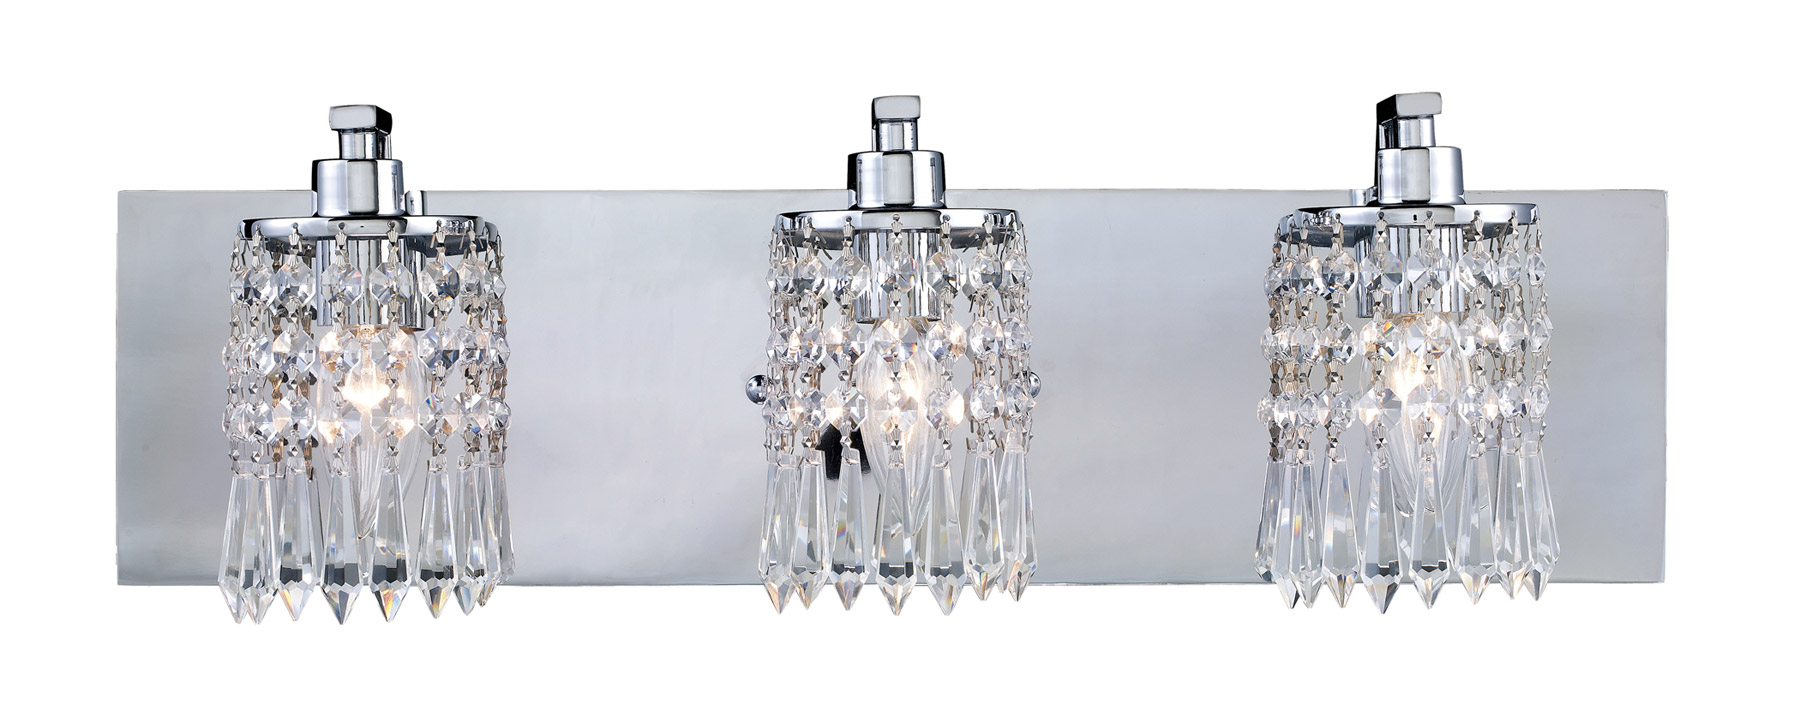 Elk Lighting 11230/3 Crystal Optix Vanity Light